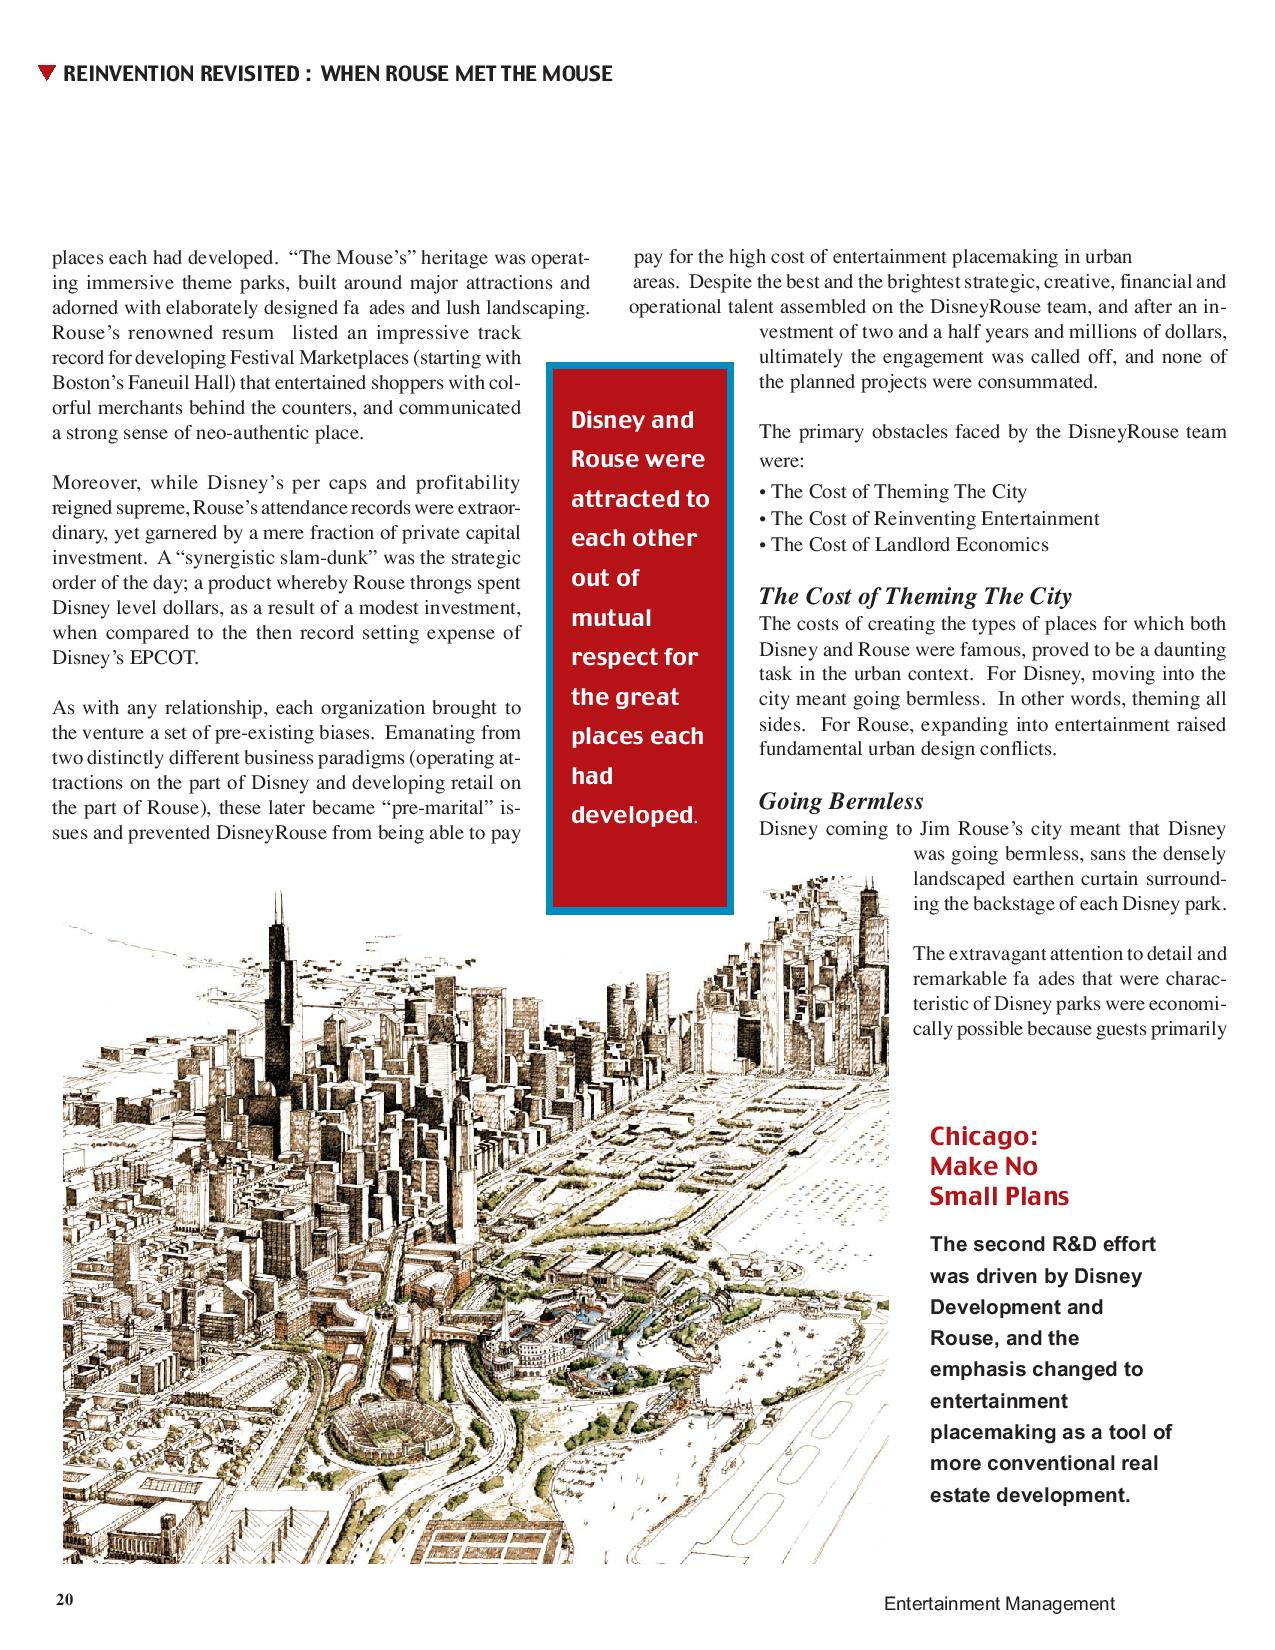 Rouse+Meets+the+Mouse copy-page-004.jpg